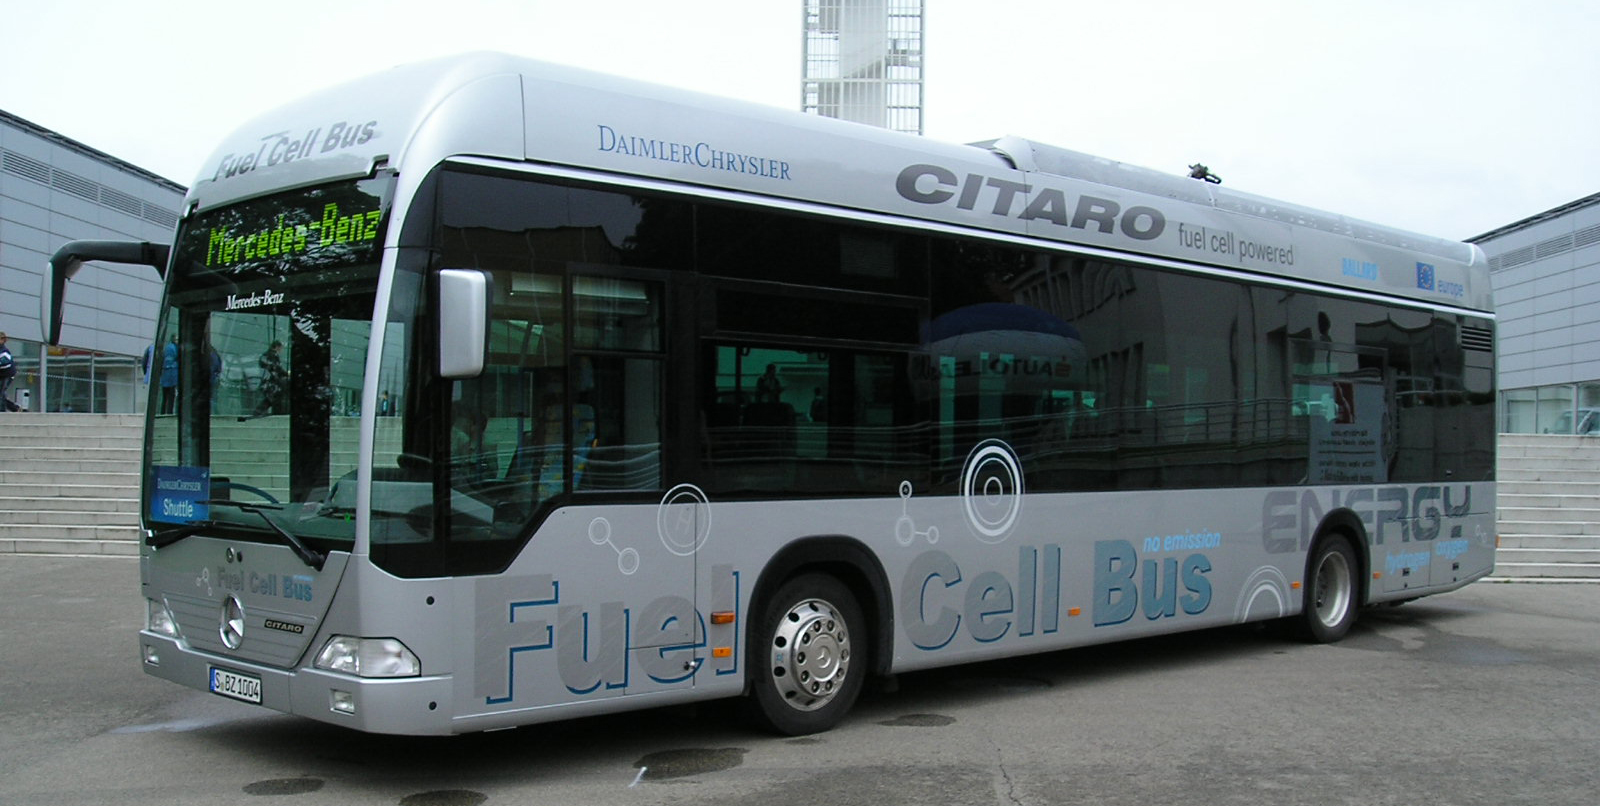 Fox provided about 100 ejector sets that were installed into a valve block – with integral solenoid and check valves, which were installed on the dozens of CITARO fuel cell busses that operated in Europe.